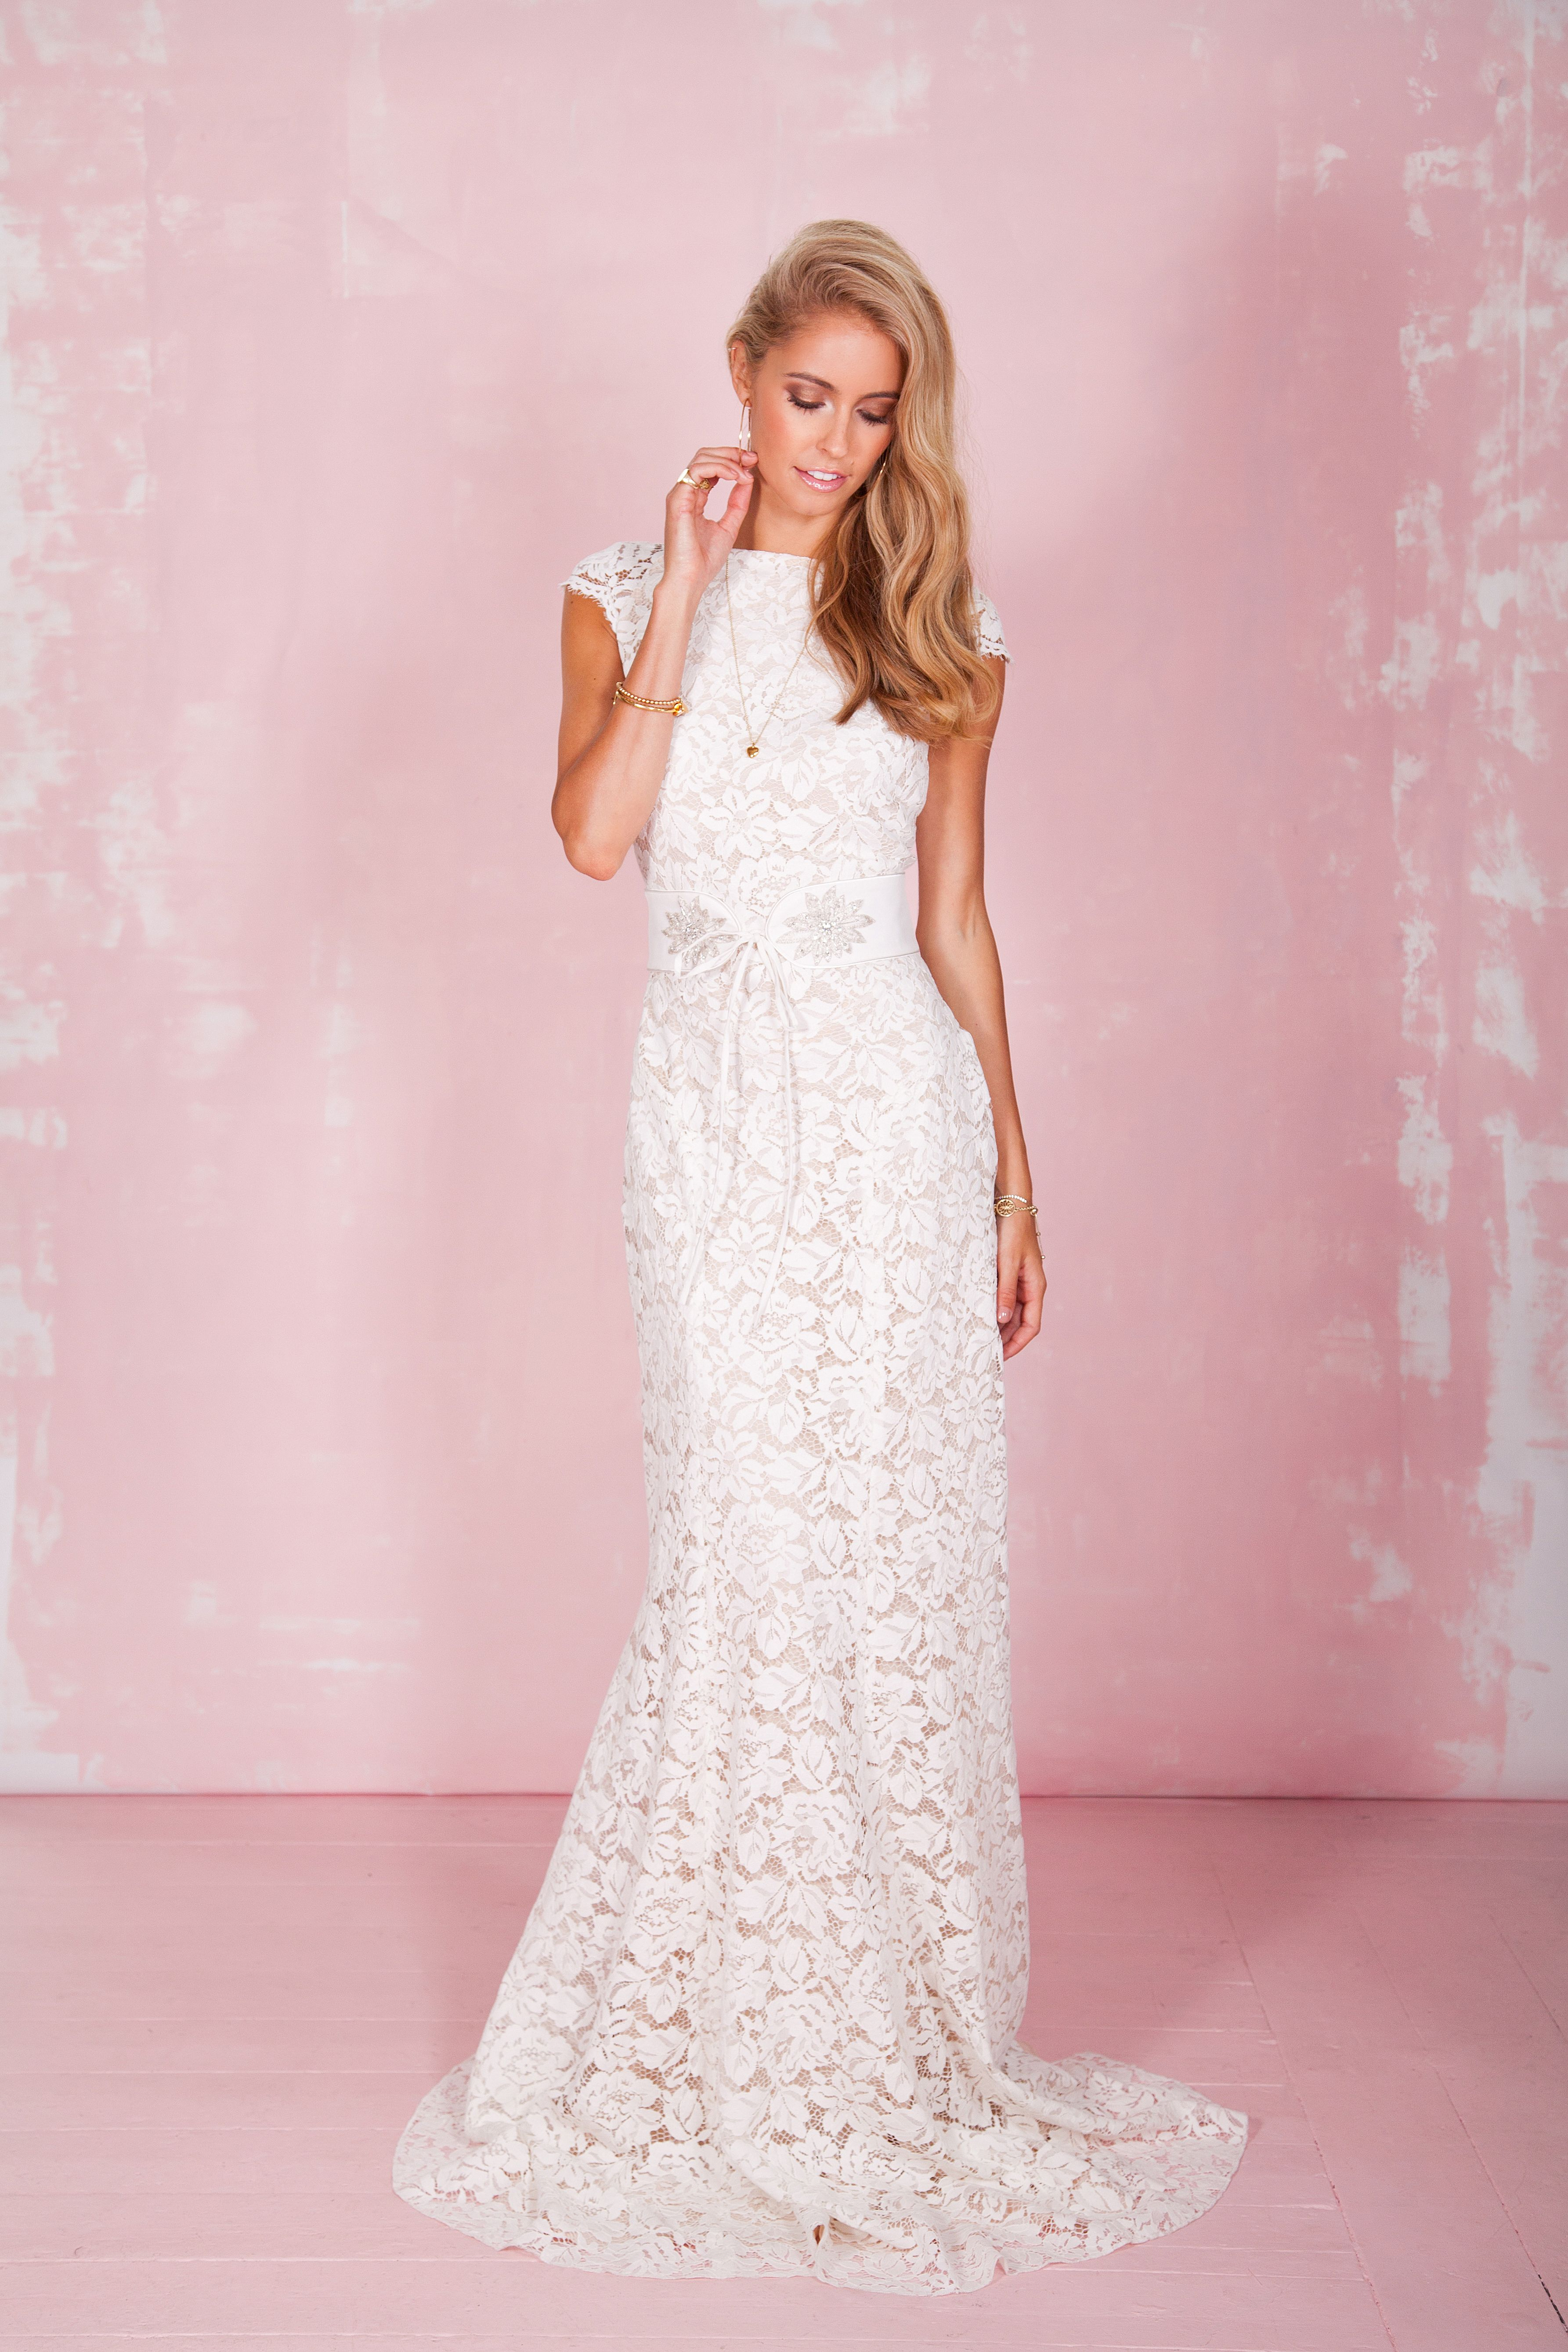 Couture wedding dresses london  Jerry Dress With Belt Front  Wedding  Pinterest  Bridal